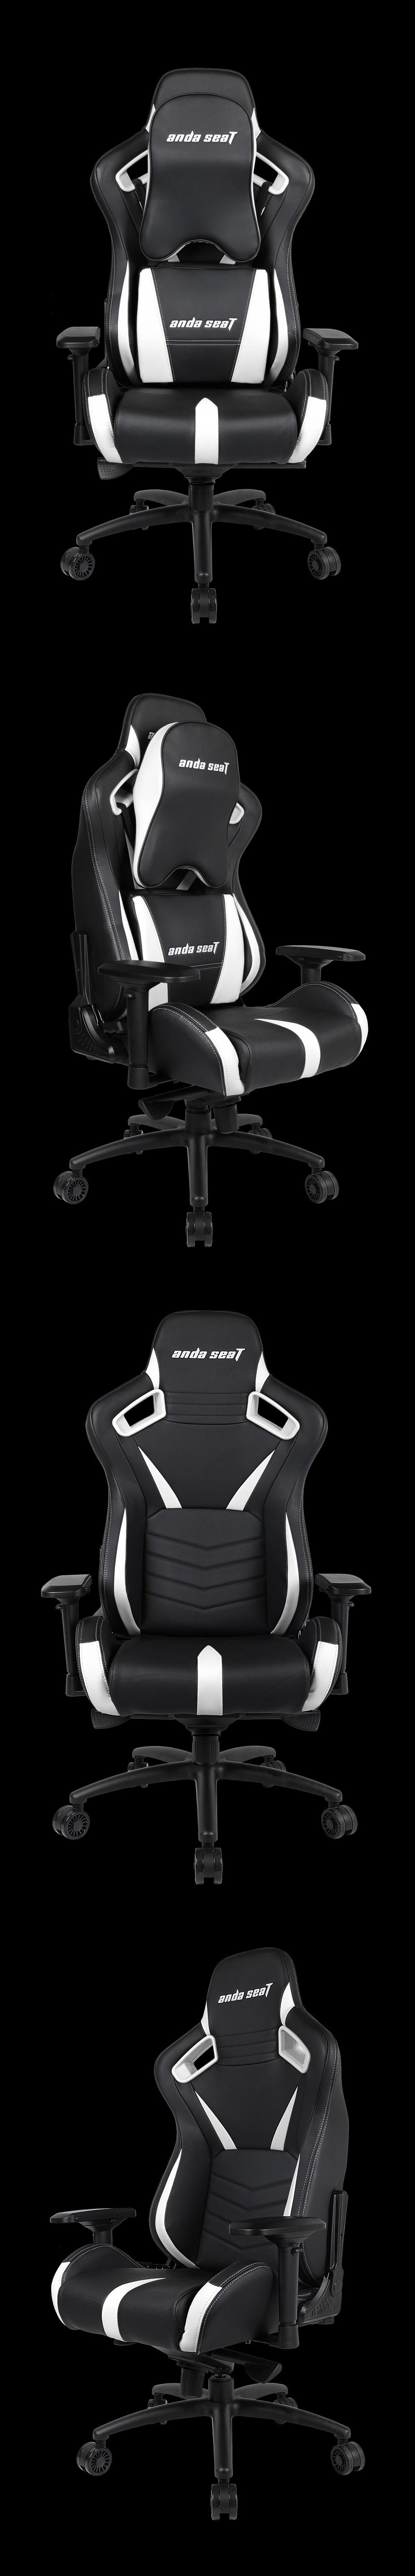 Anda Seat AD12-XL-03 v2 Gaming Chair - Black/White - Desktop Overview 2